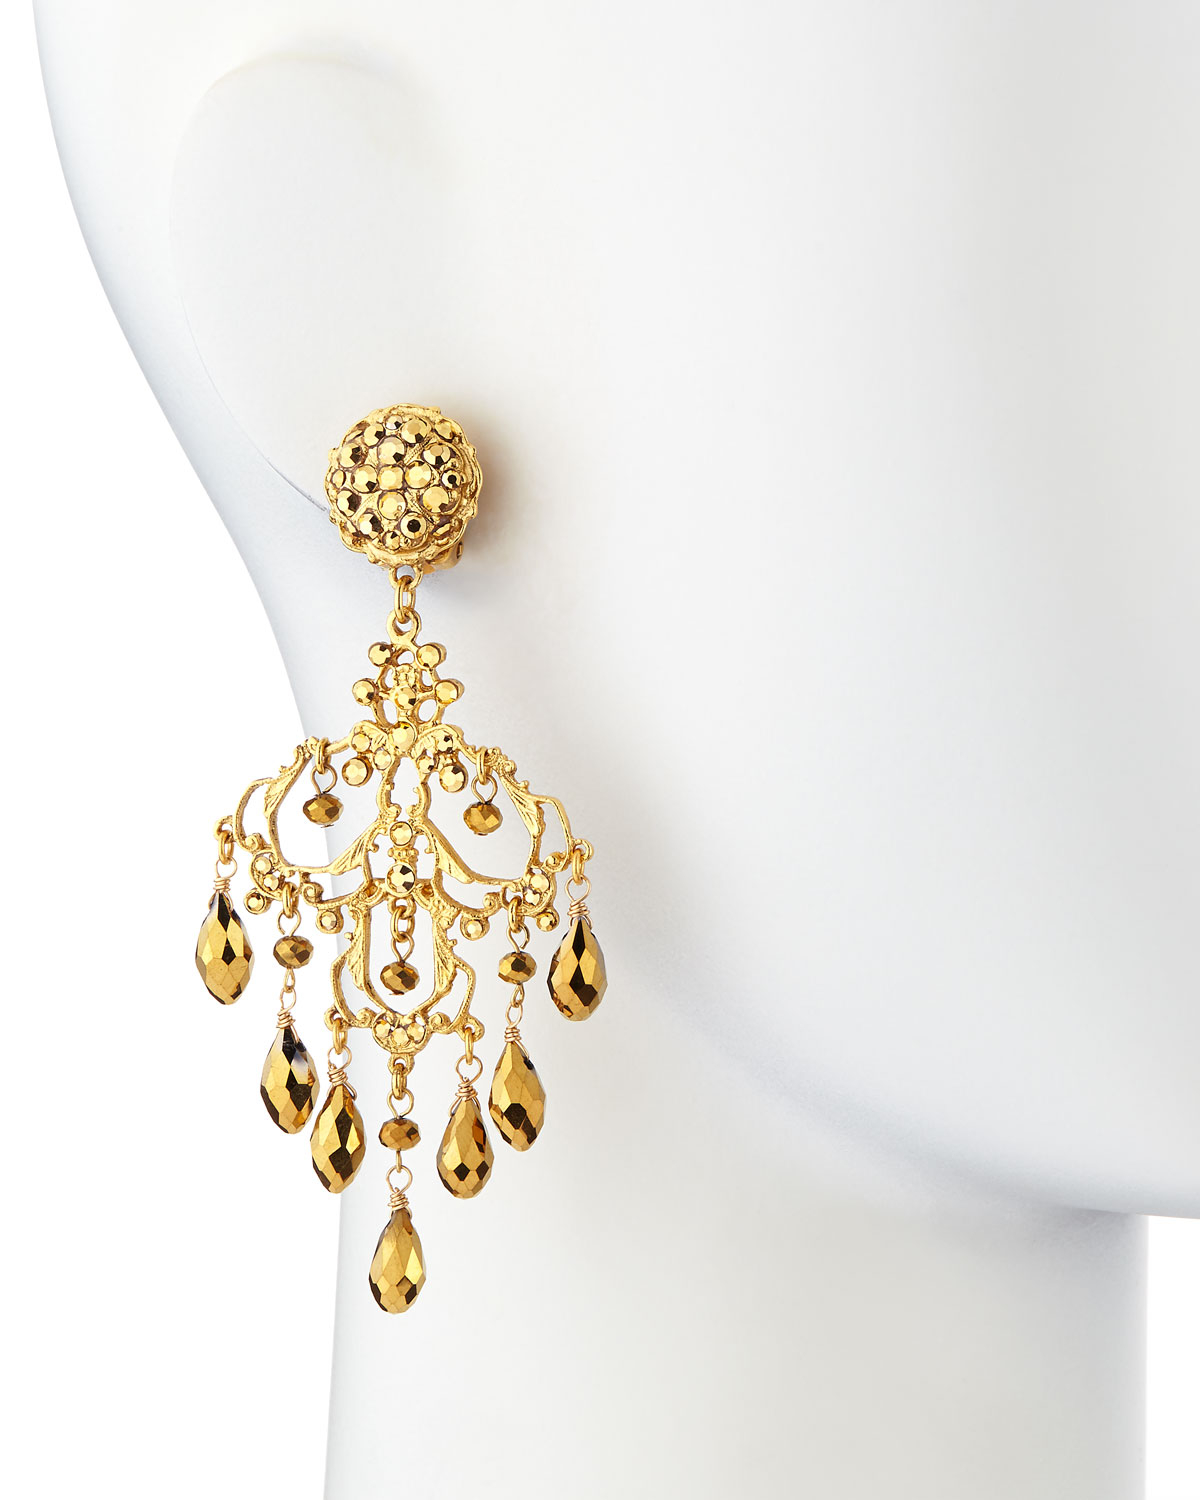 Jose & maria barrera 24K Gold Plated Filigree Chandelier Earrings ...